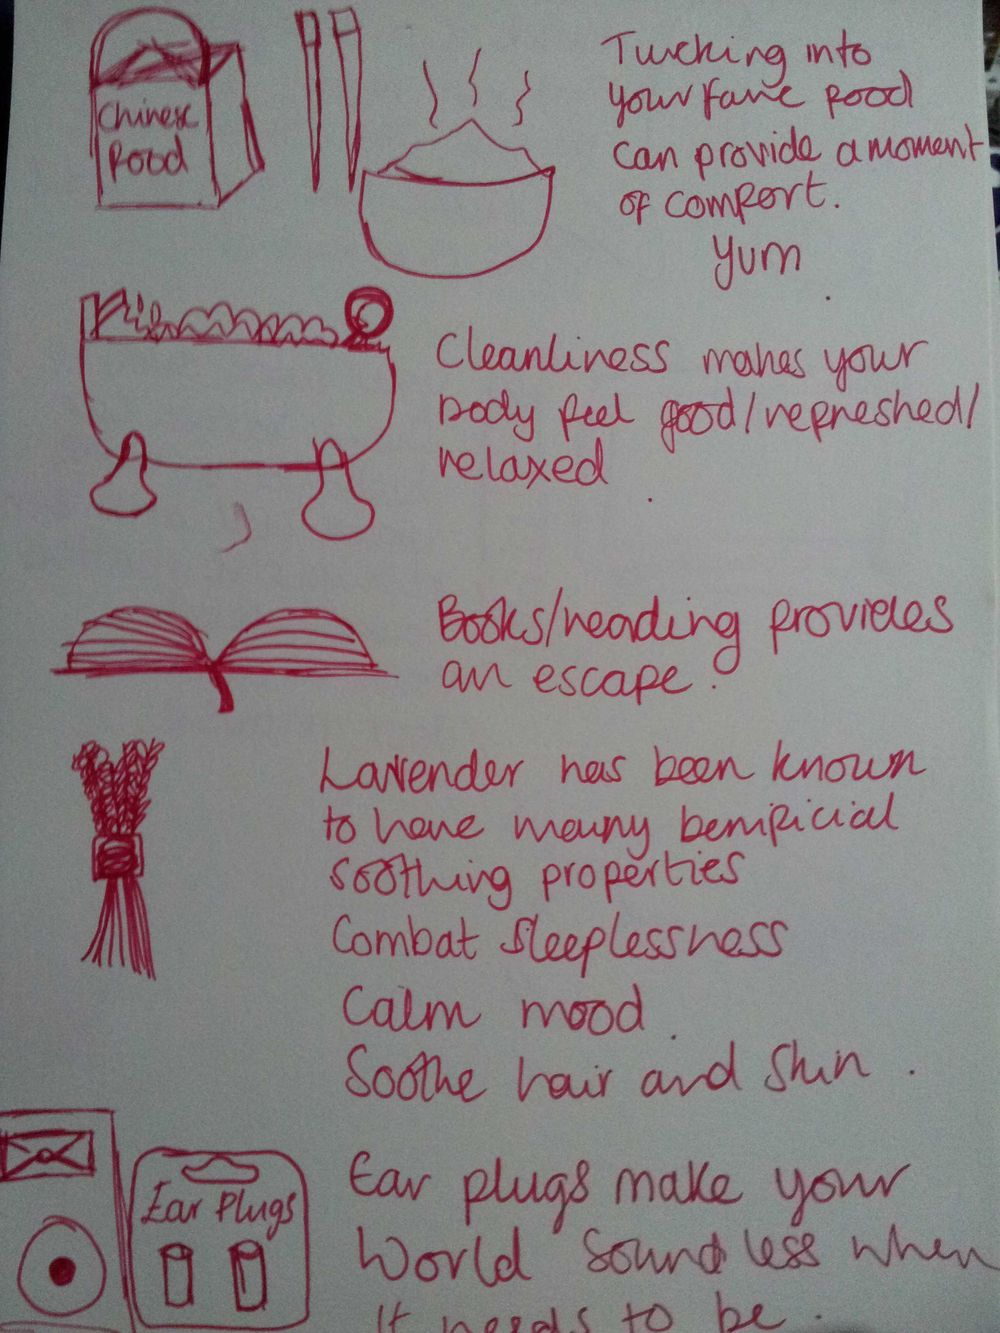 Shereens chosen word sketch/doodles and notes - image 3 - student project